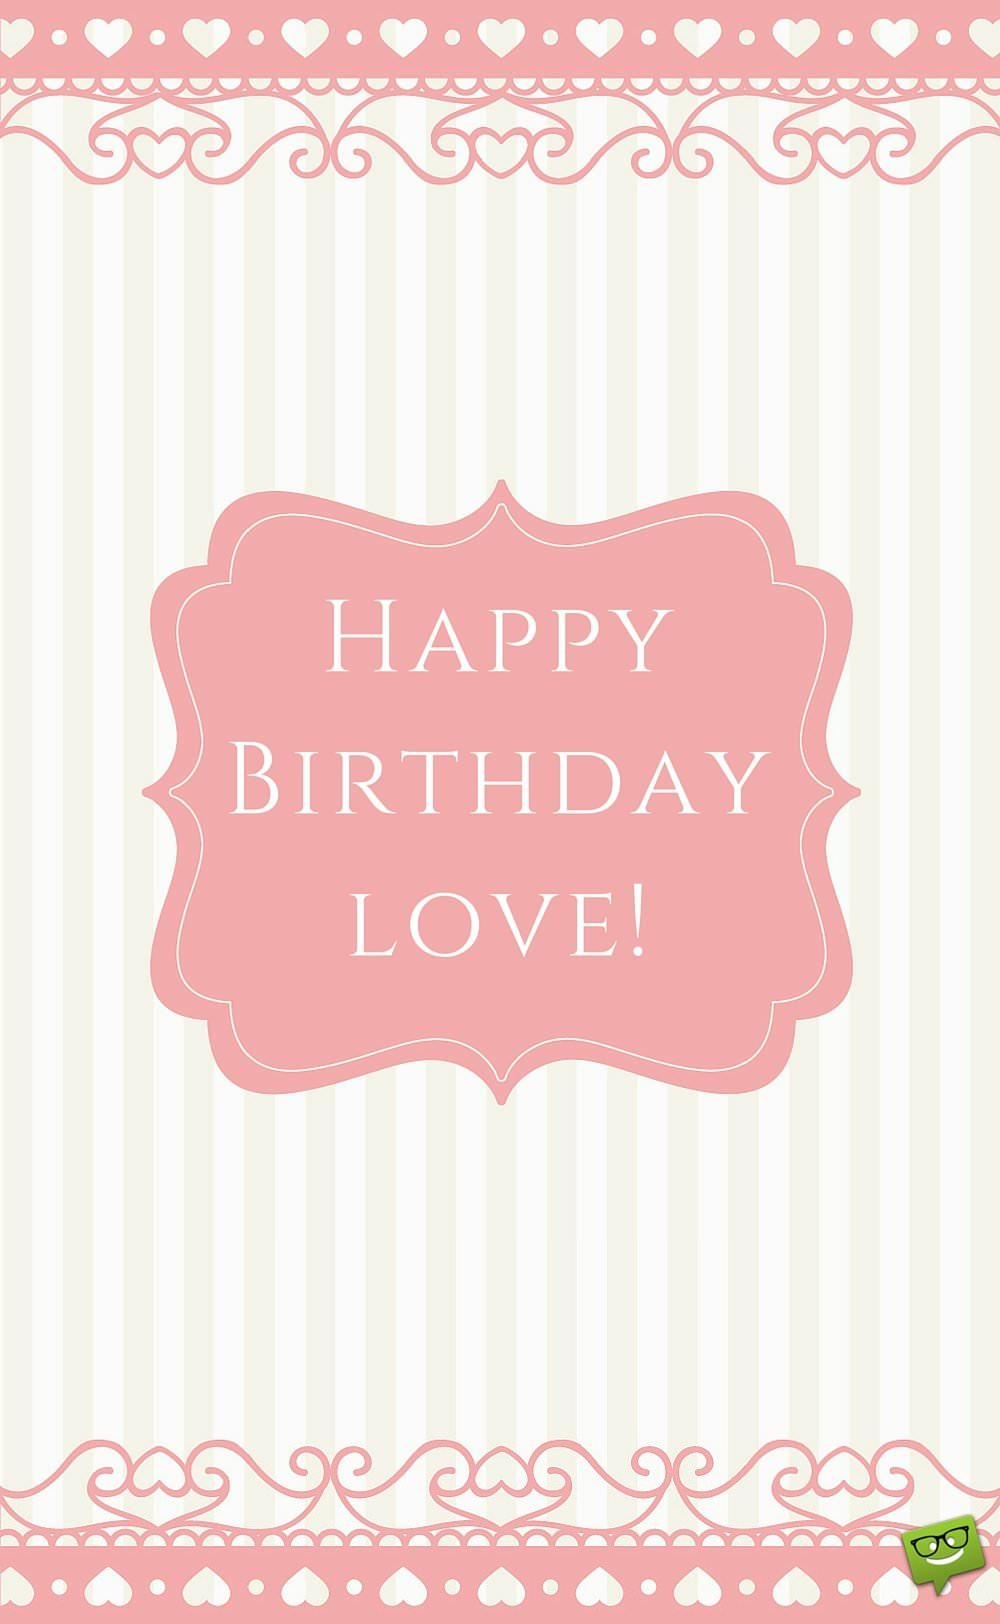 A Love Even Words Can't Express | Birthday Wishes for my Lover